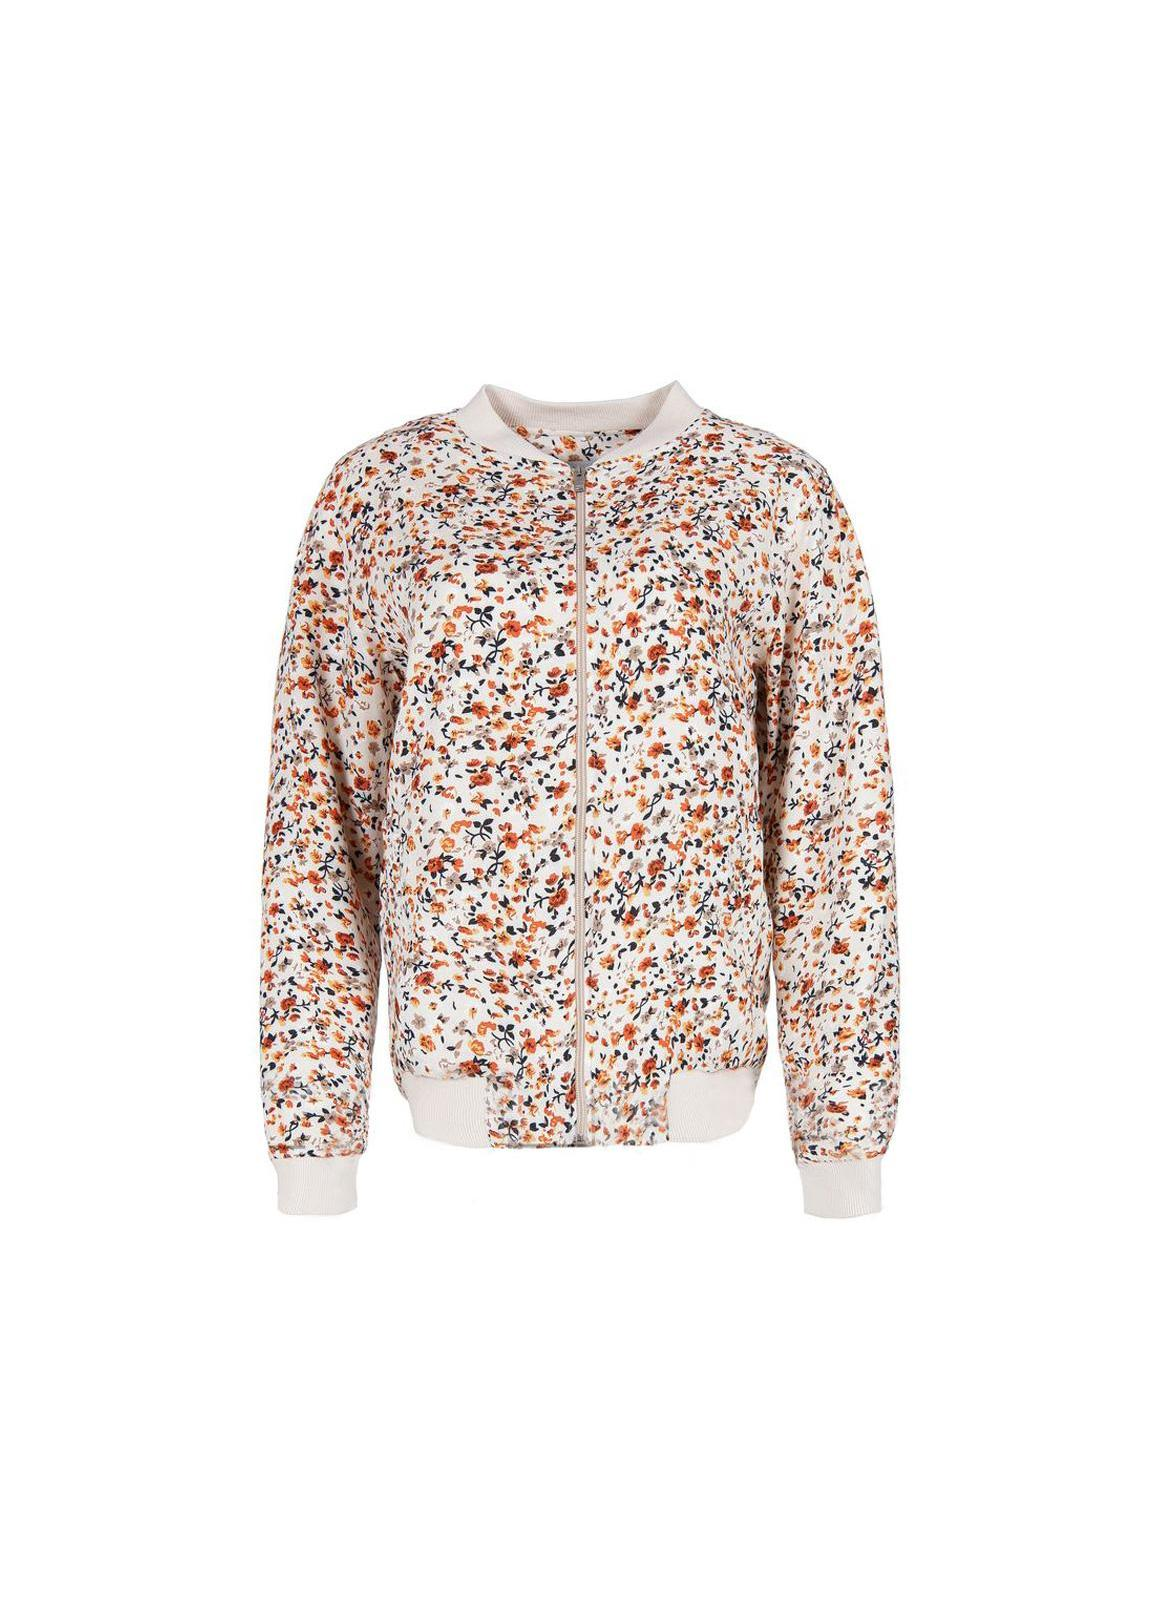 Cross Jeans® Floral Jacket - Ecru